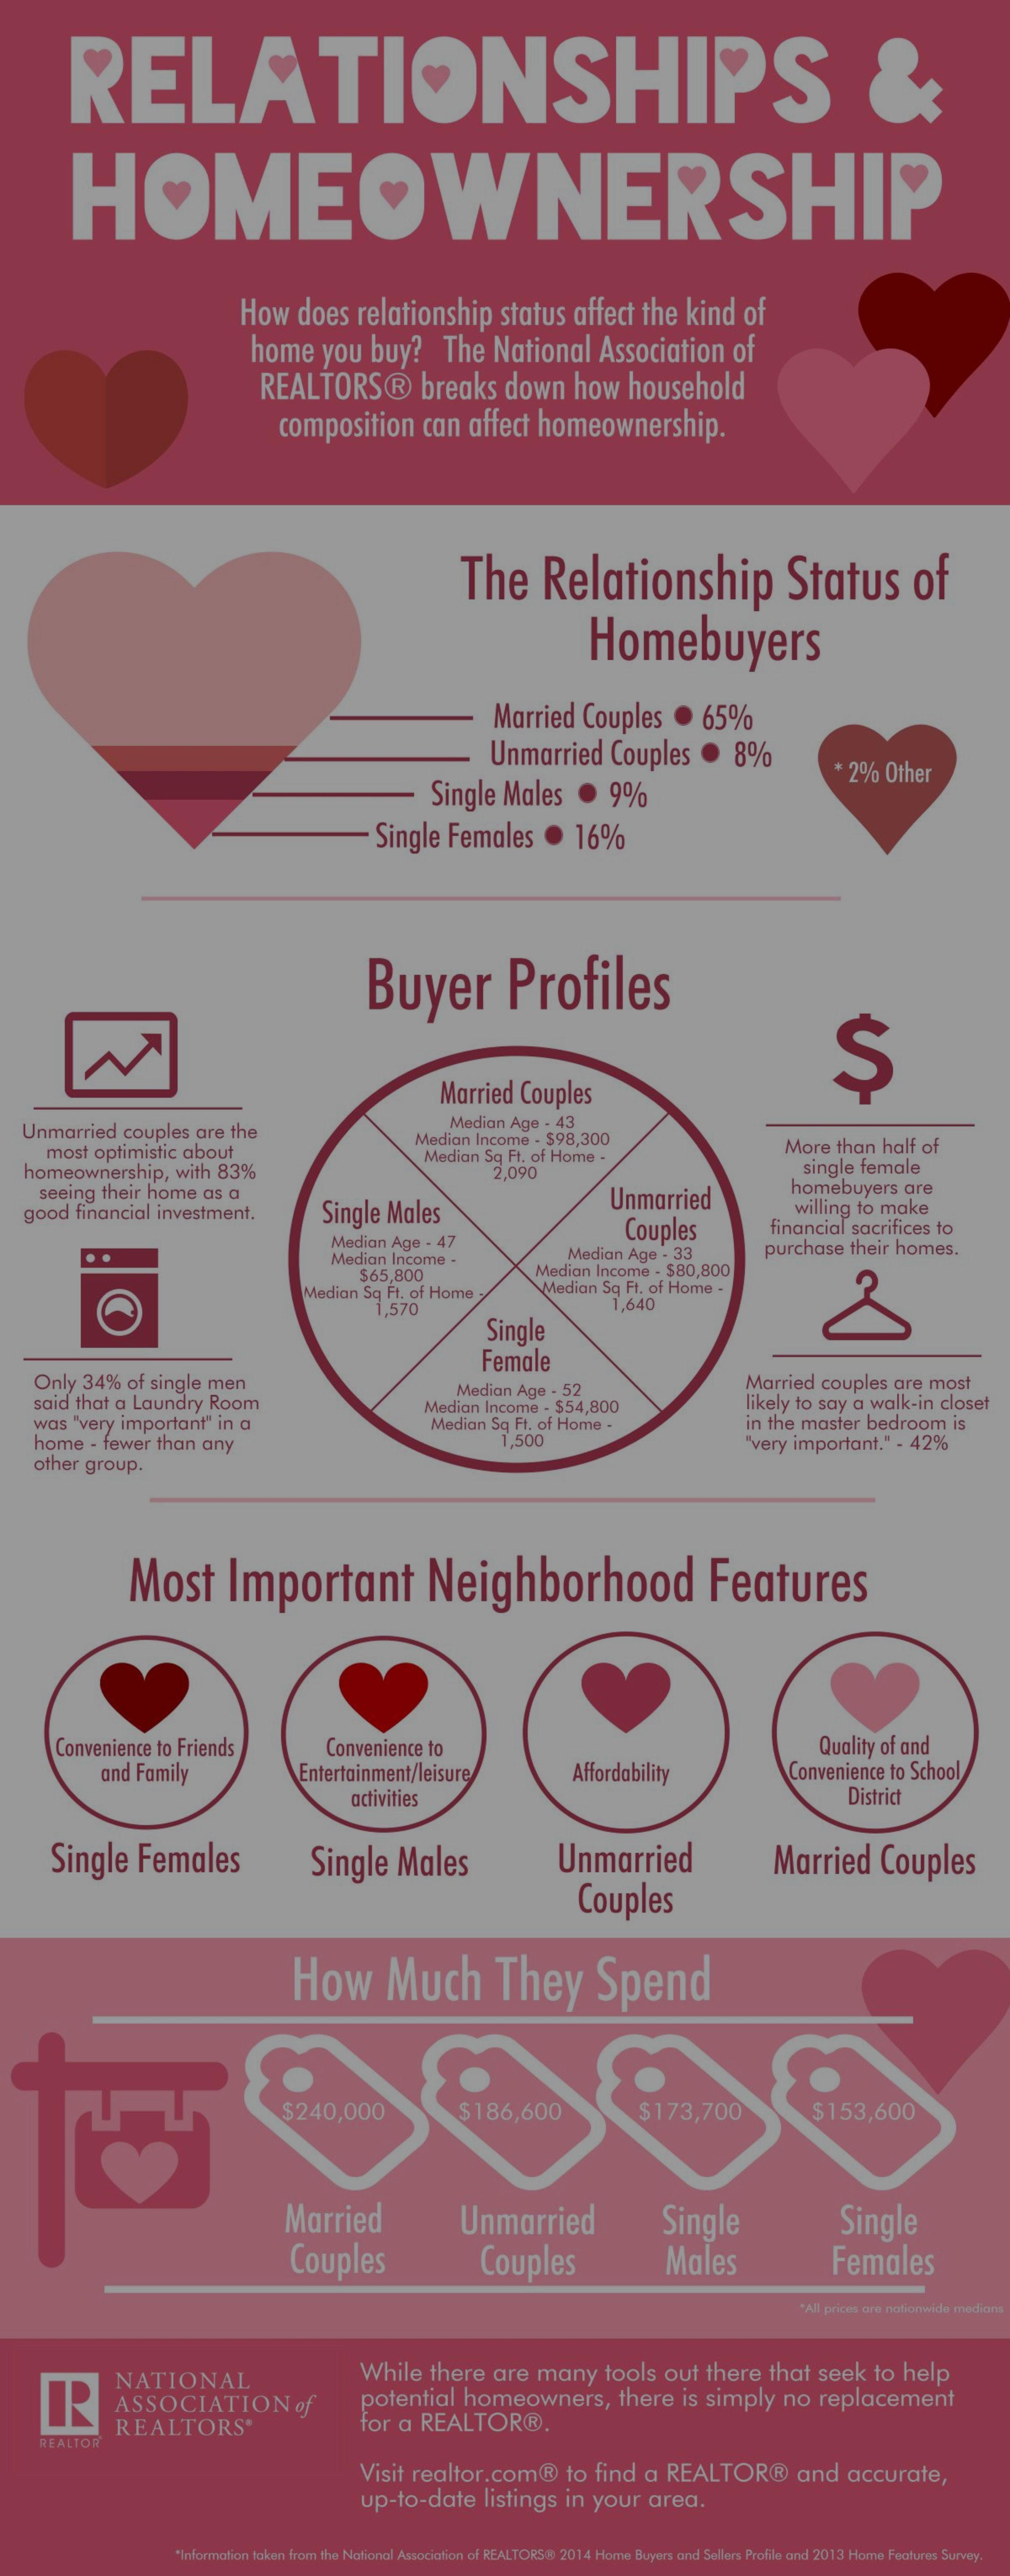 Does your relationship status affect the kind of home you buy?